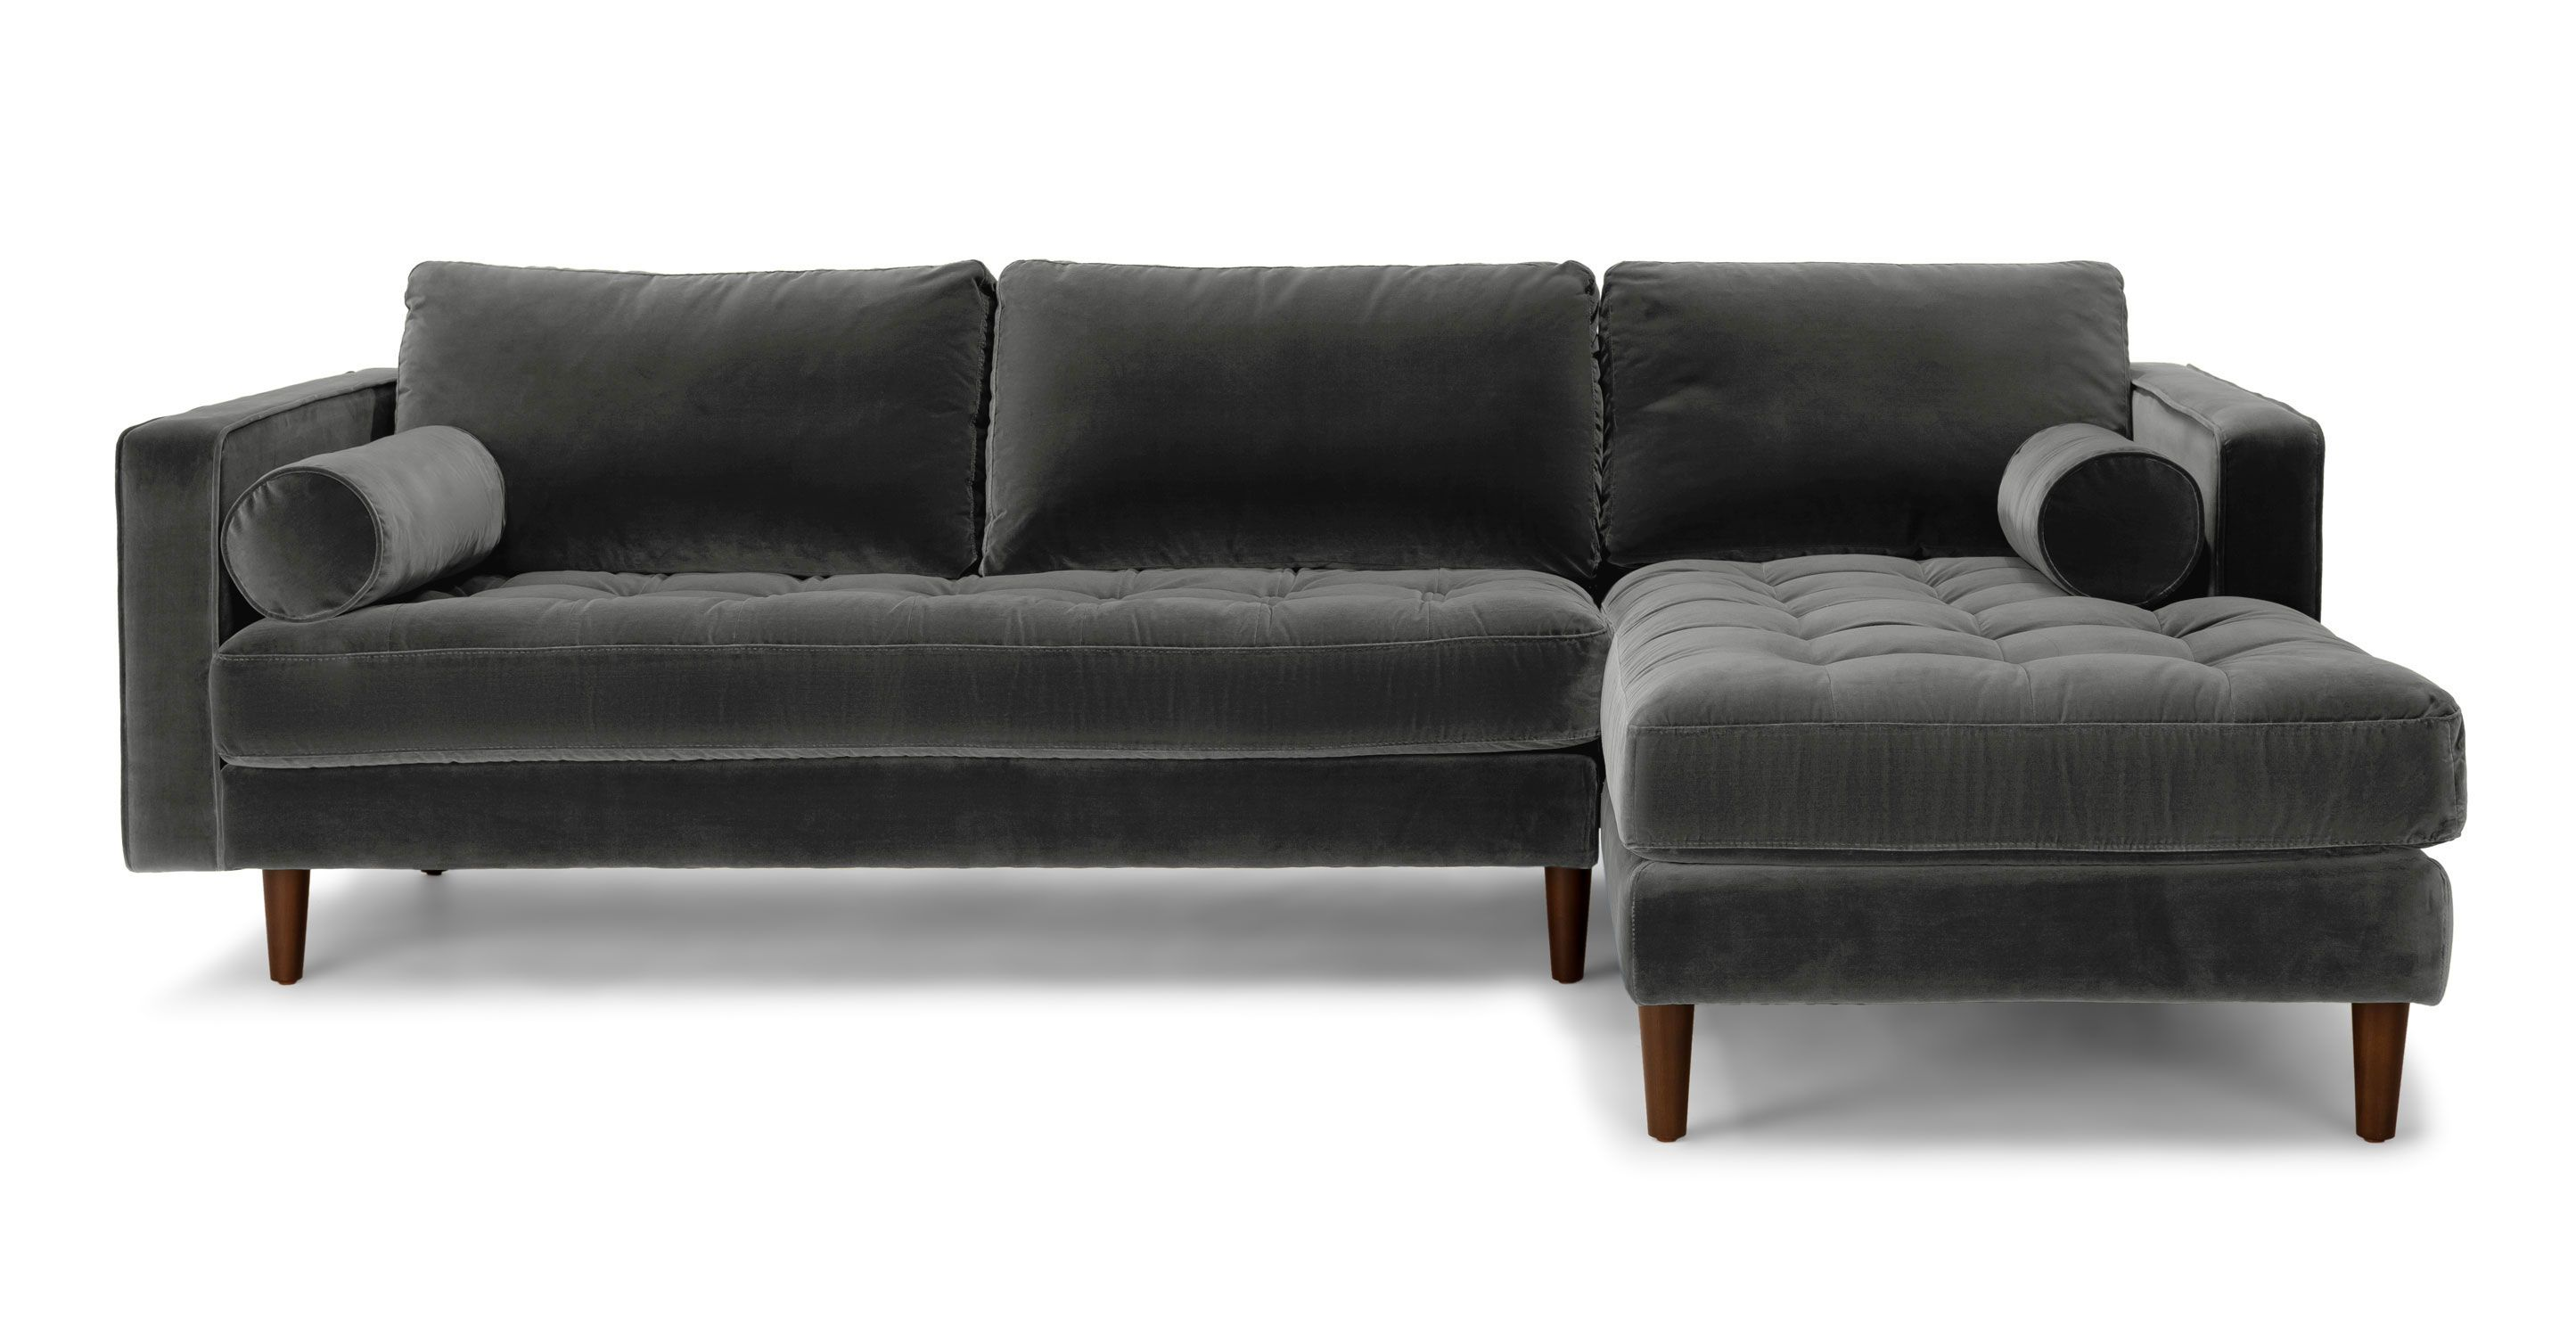 Beau Sven Shadow Gray Right Sectional Sofa   Sectionals   Article | Modern,  Mid Century And Scandinavian Furniture